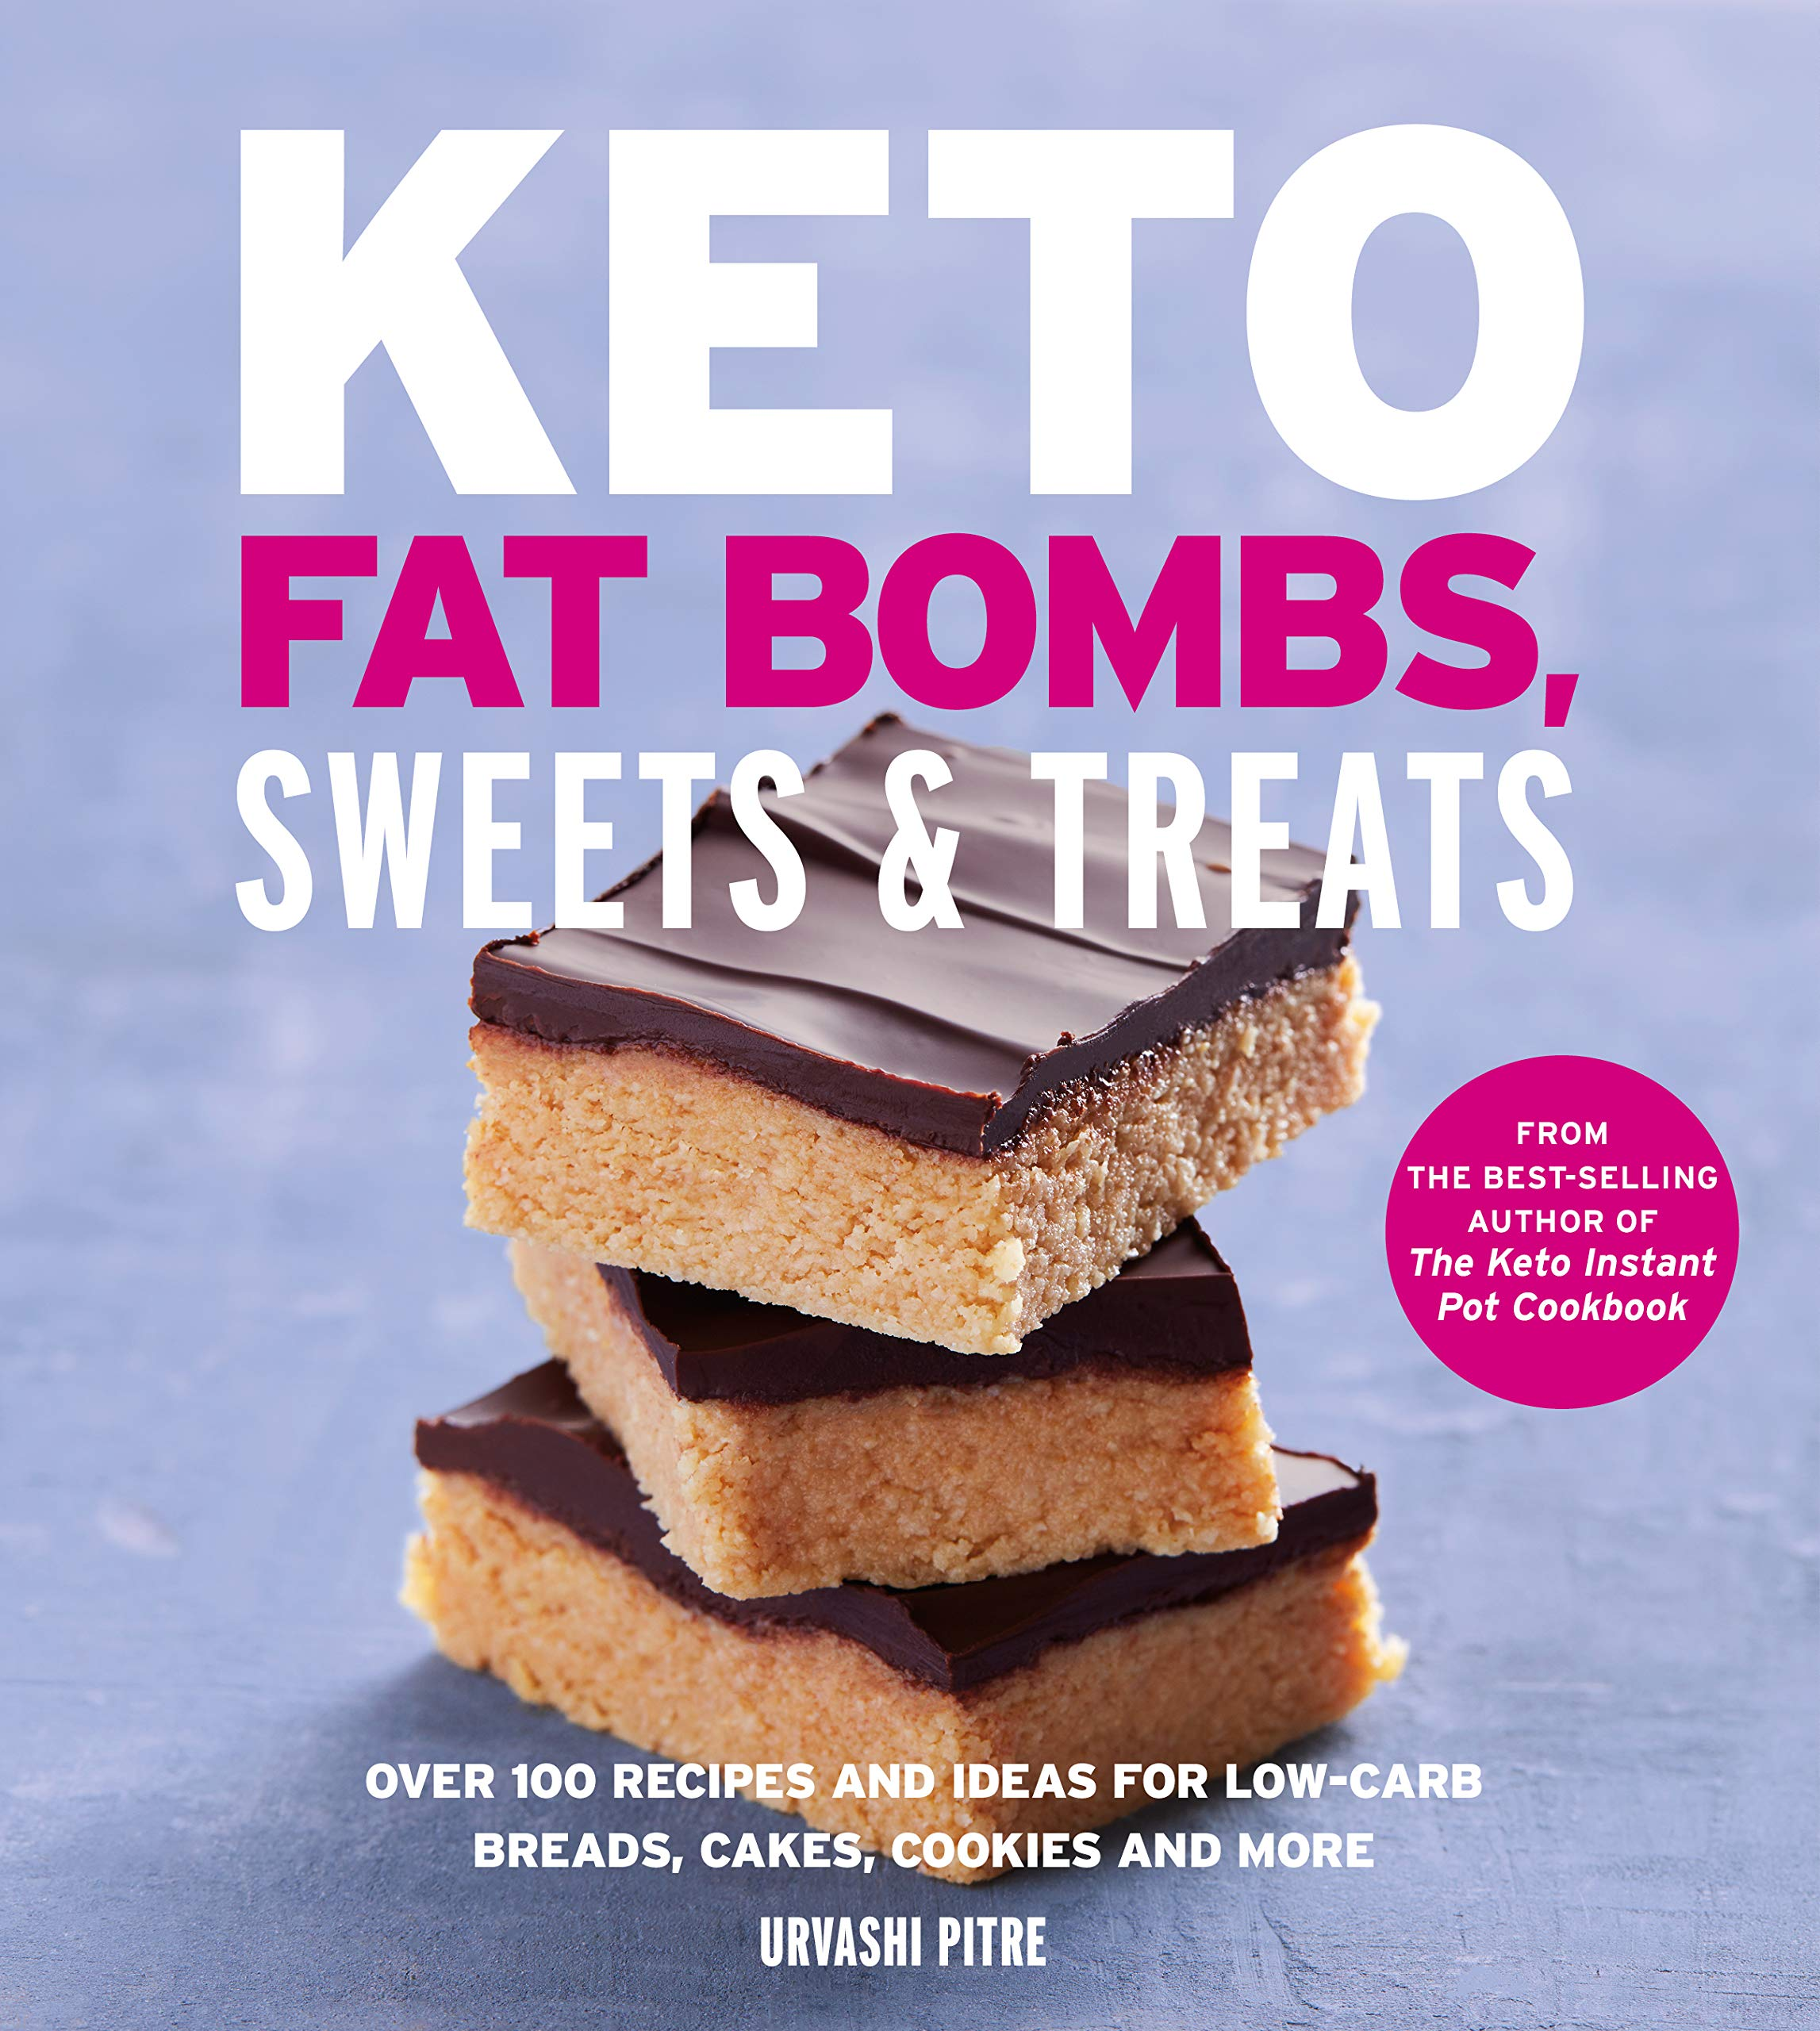 Compare Keto-Friendly Dessert Recipes